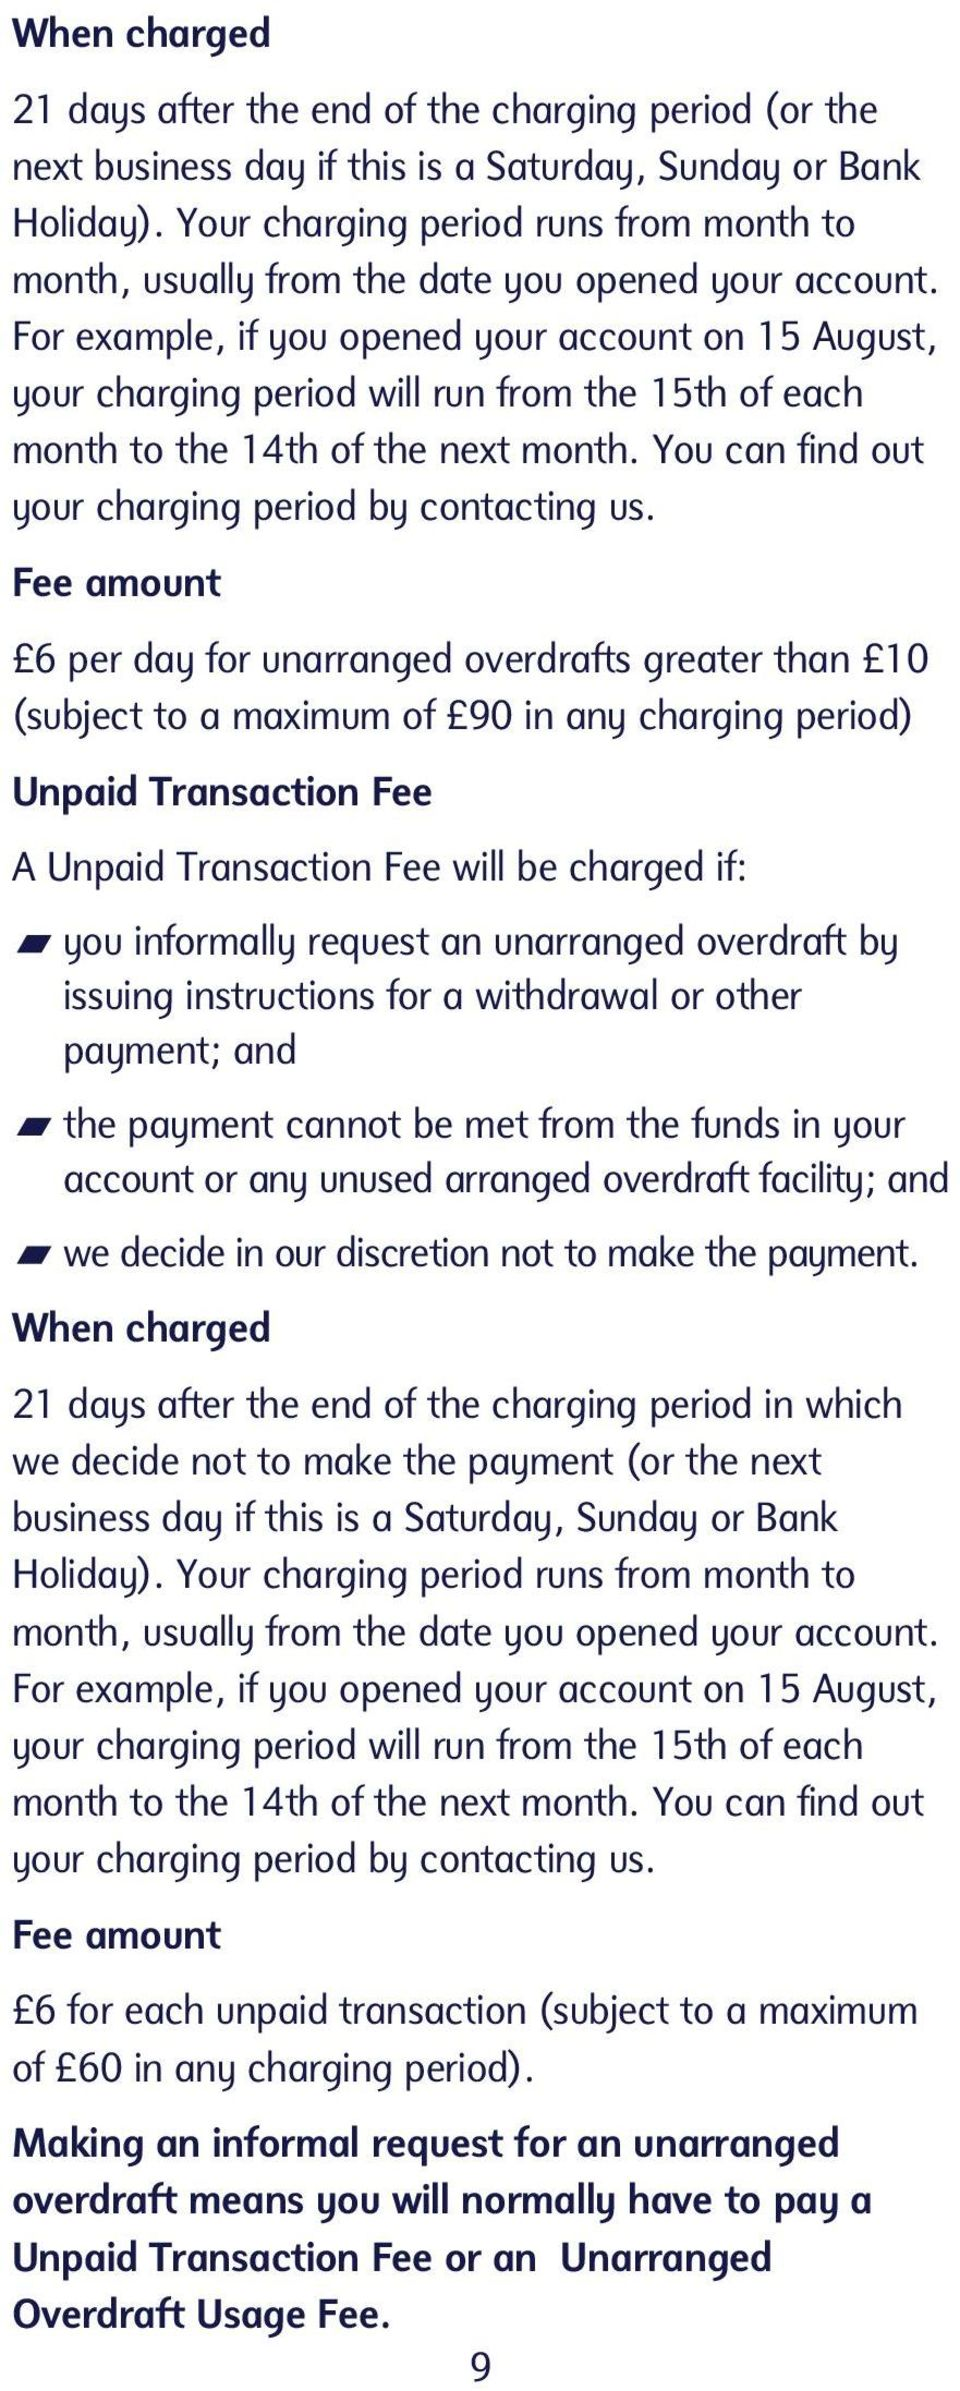 For example, if you opened your account on 15 August, your charging period will run from the 15th of each month to the 14th of the next month. You can find out your charging period by contacting us.